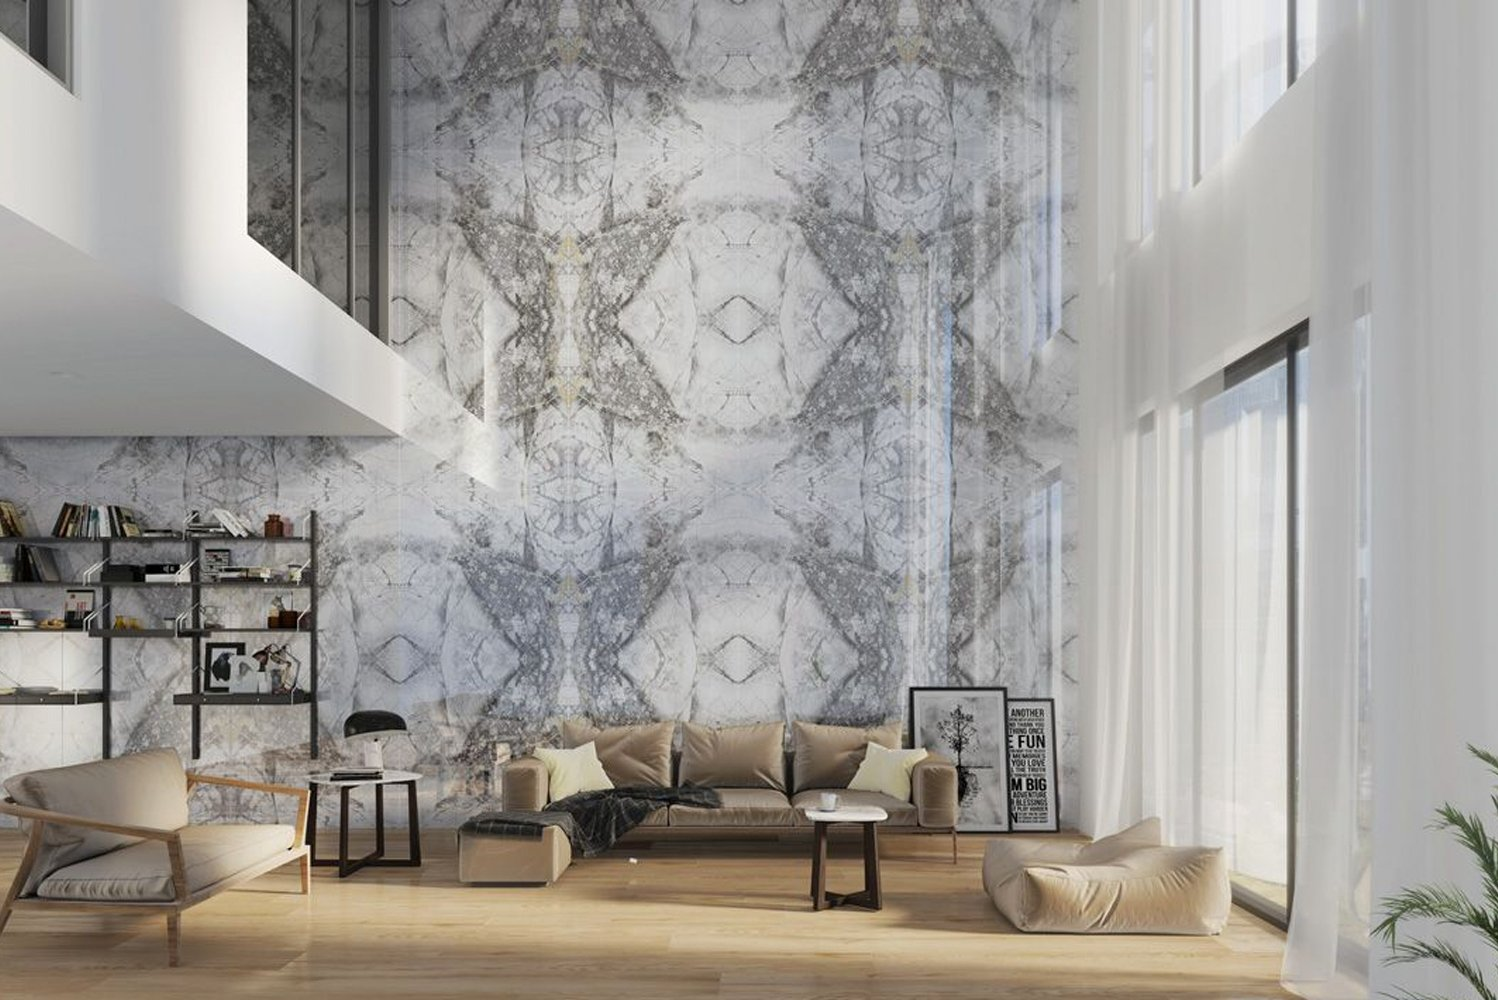 Introducing Lapicida's Artis collection, which offers a cost-effective way to approximate the look of various materials like marble, quartz or even wood.